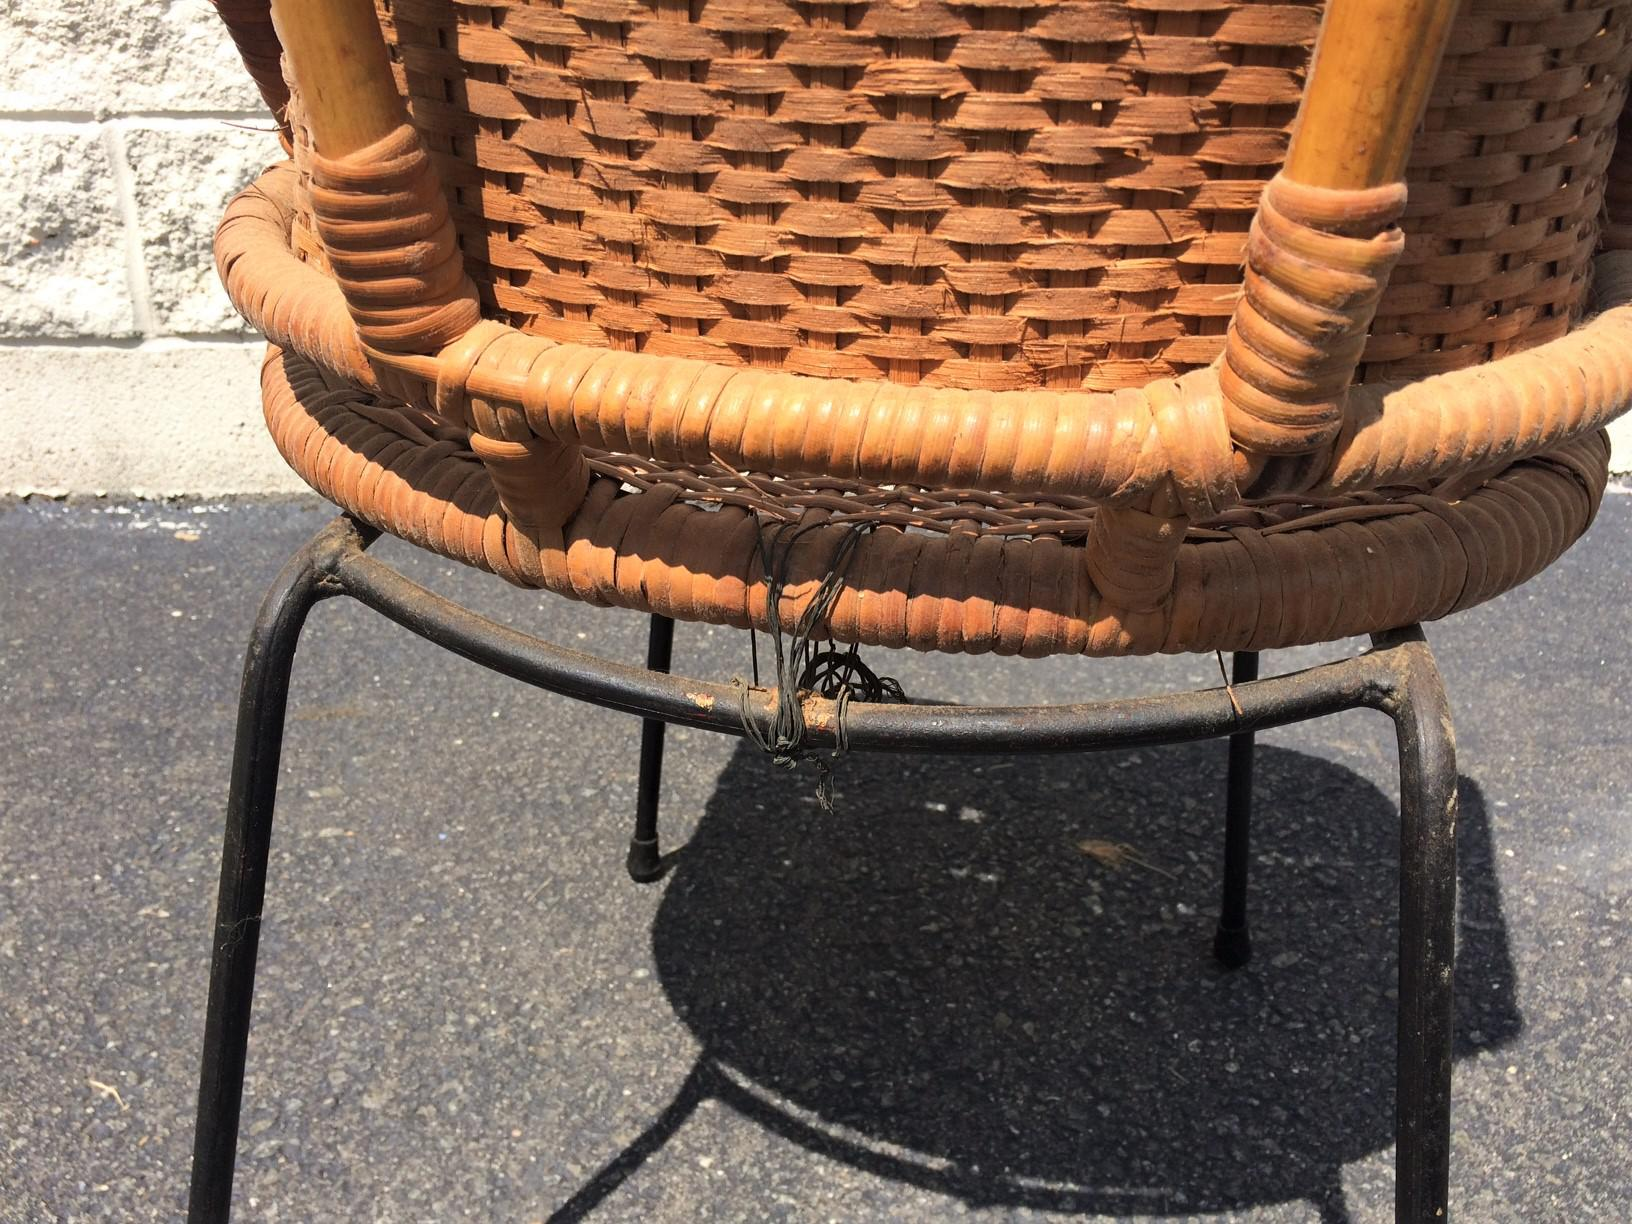 Superb Calif Asia Mid Century Rattan Chair   Image 8 Of 8